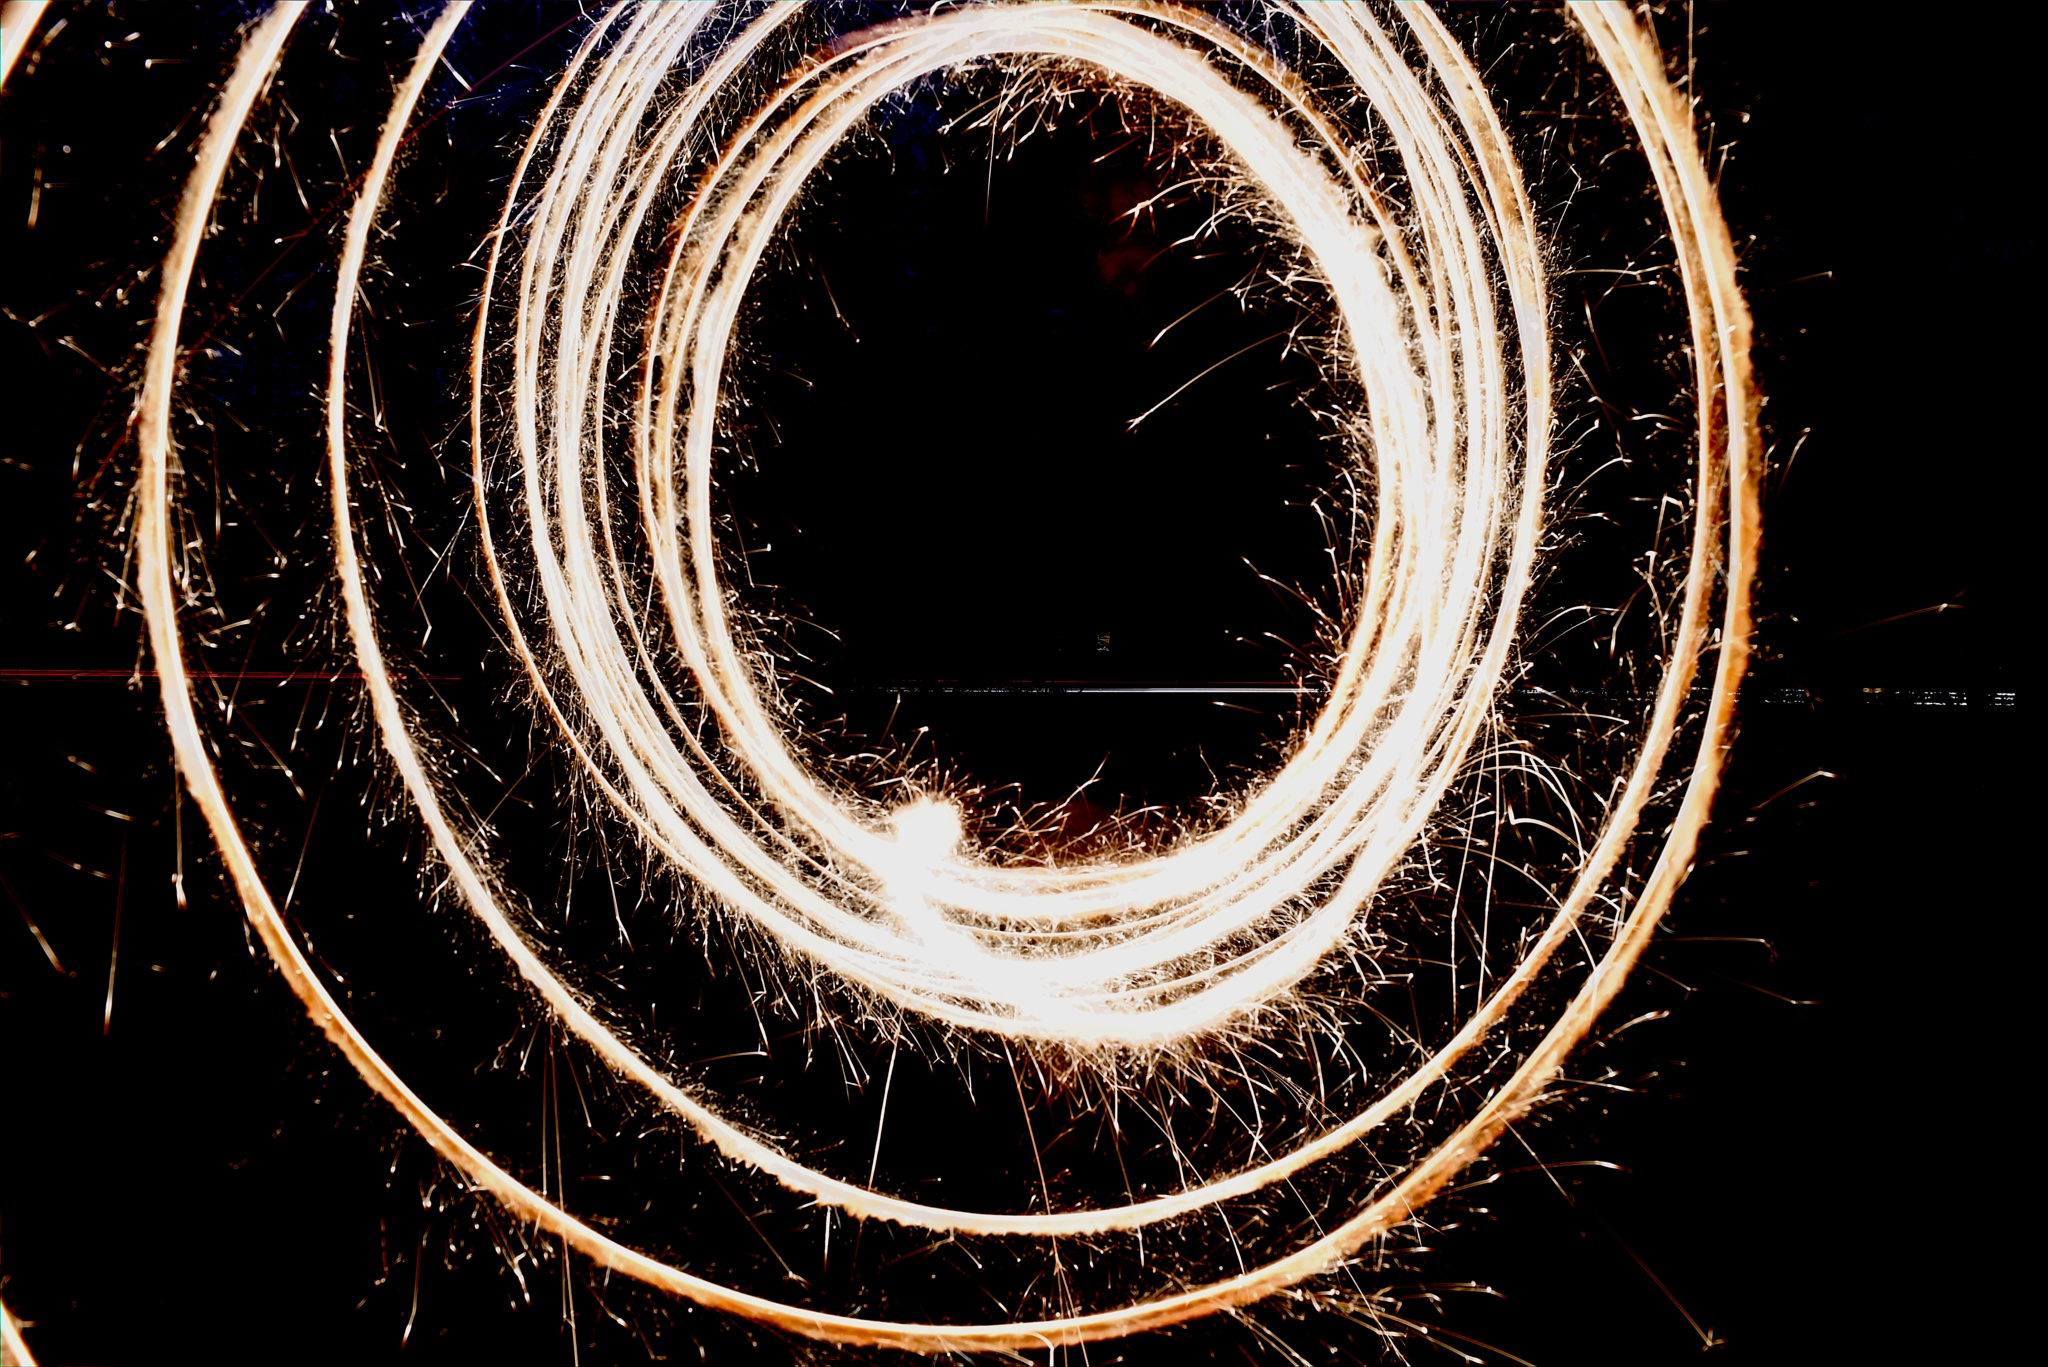 Rings of fire by James Russo